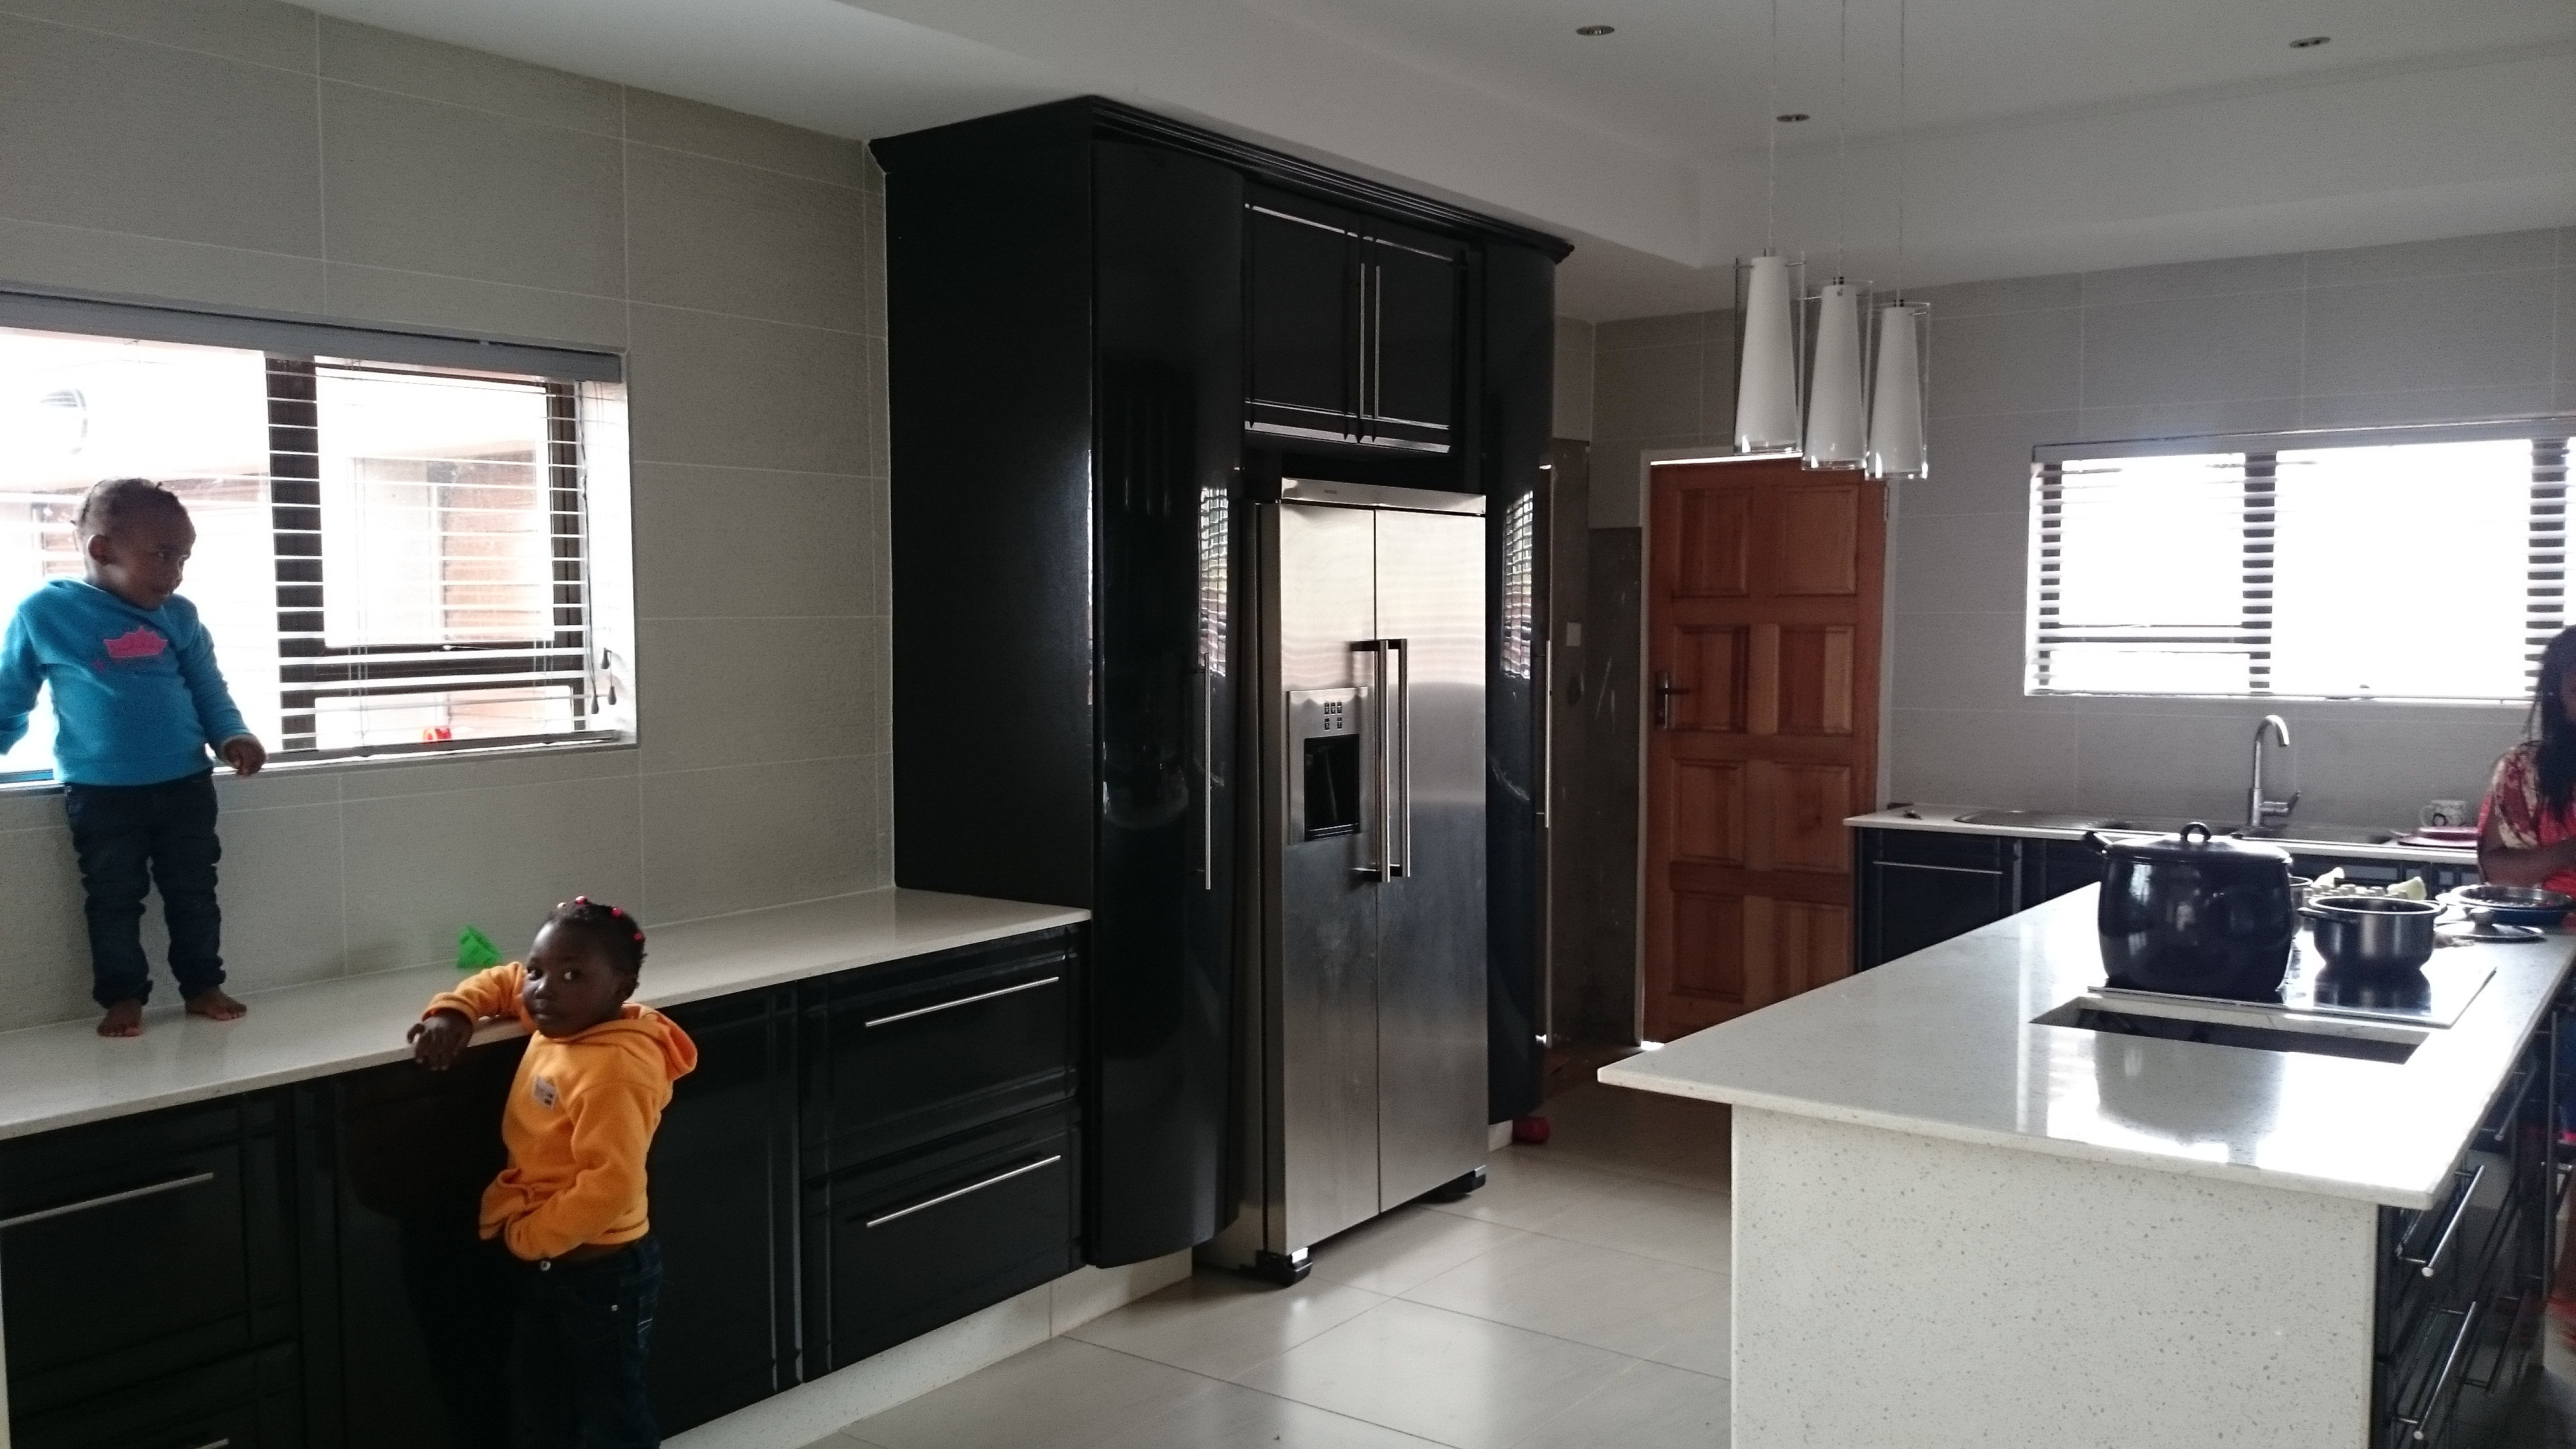 Zimbabwe kitchens harare kitchen link for Kitchen units for sale in zimbabwe